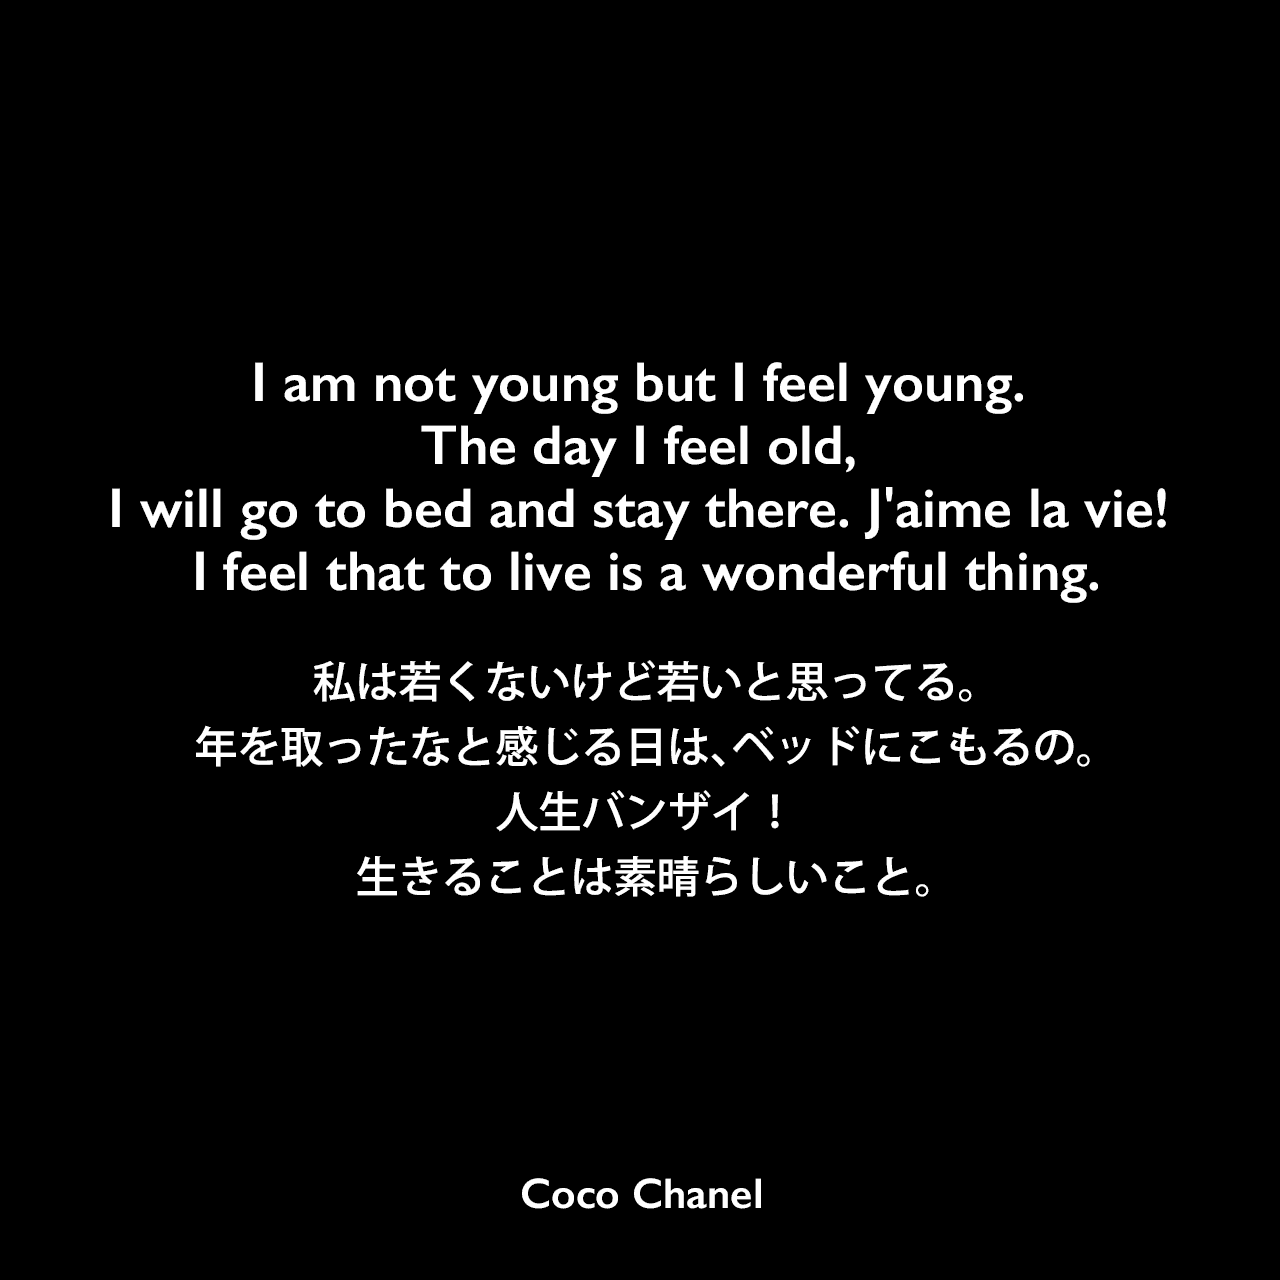 I am not young but I feel young. The day I feel old, I will go to bed and stay there. J'aime la vie! I feel that to live is a wonderful thing.私は若くないけど若いと思ってる。年を取ったなと感じる日は、ベッドにこもるの。人生バンザイ!生きることは素晴らしいこと。Coco Chanel